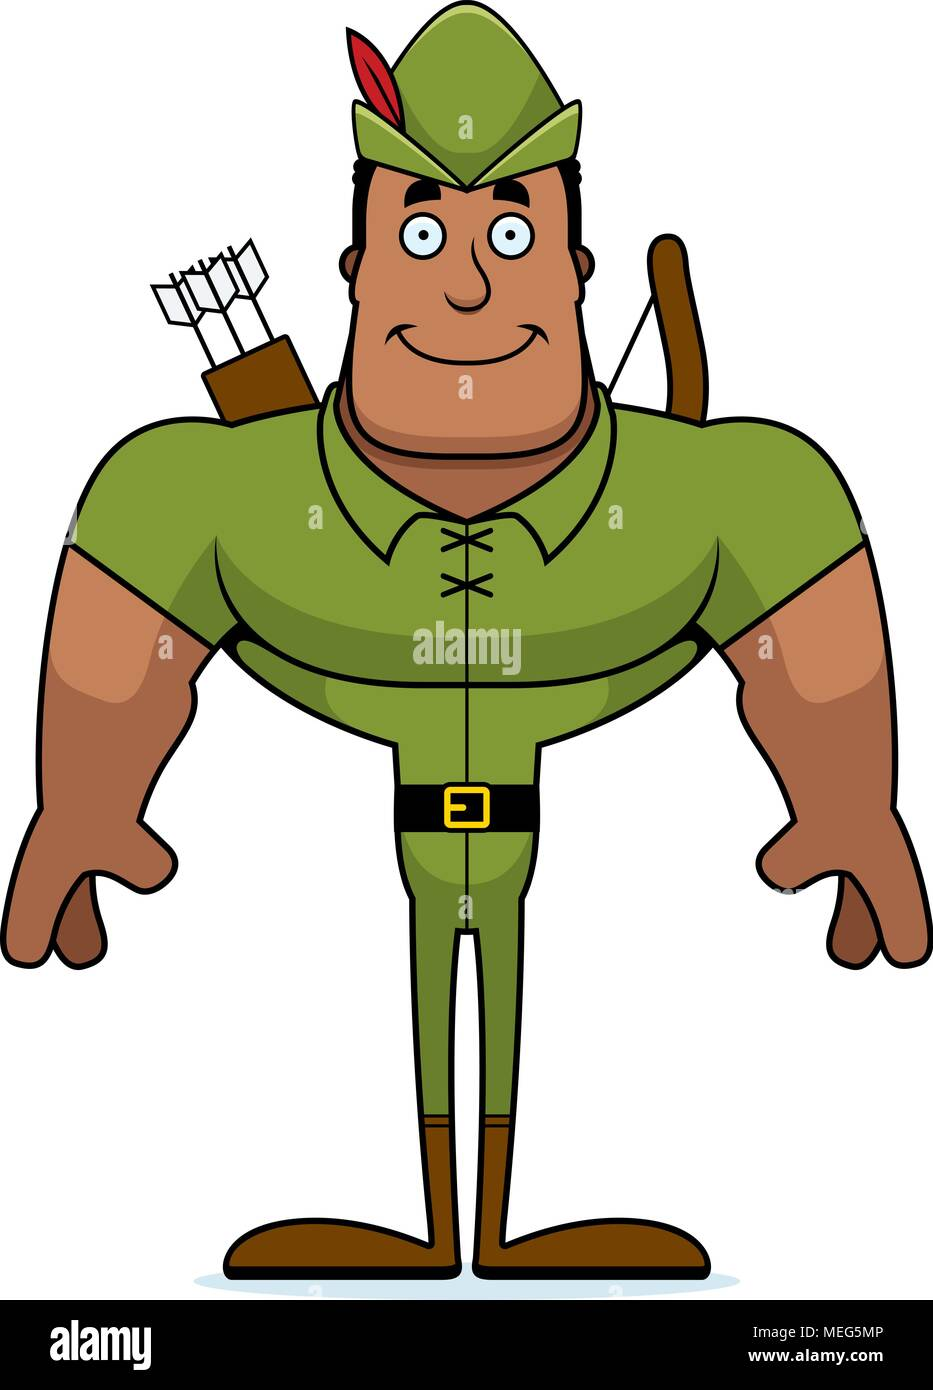 Robin Hood Cartoon High Resolution Stock Photography And Images